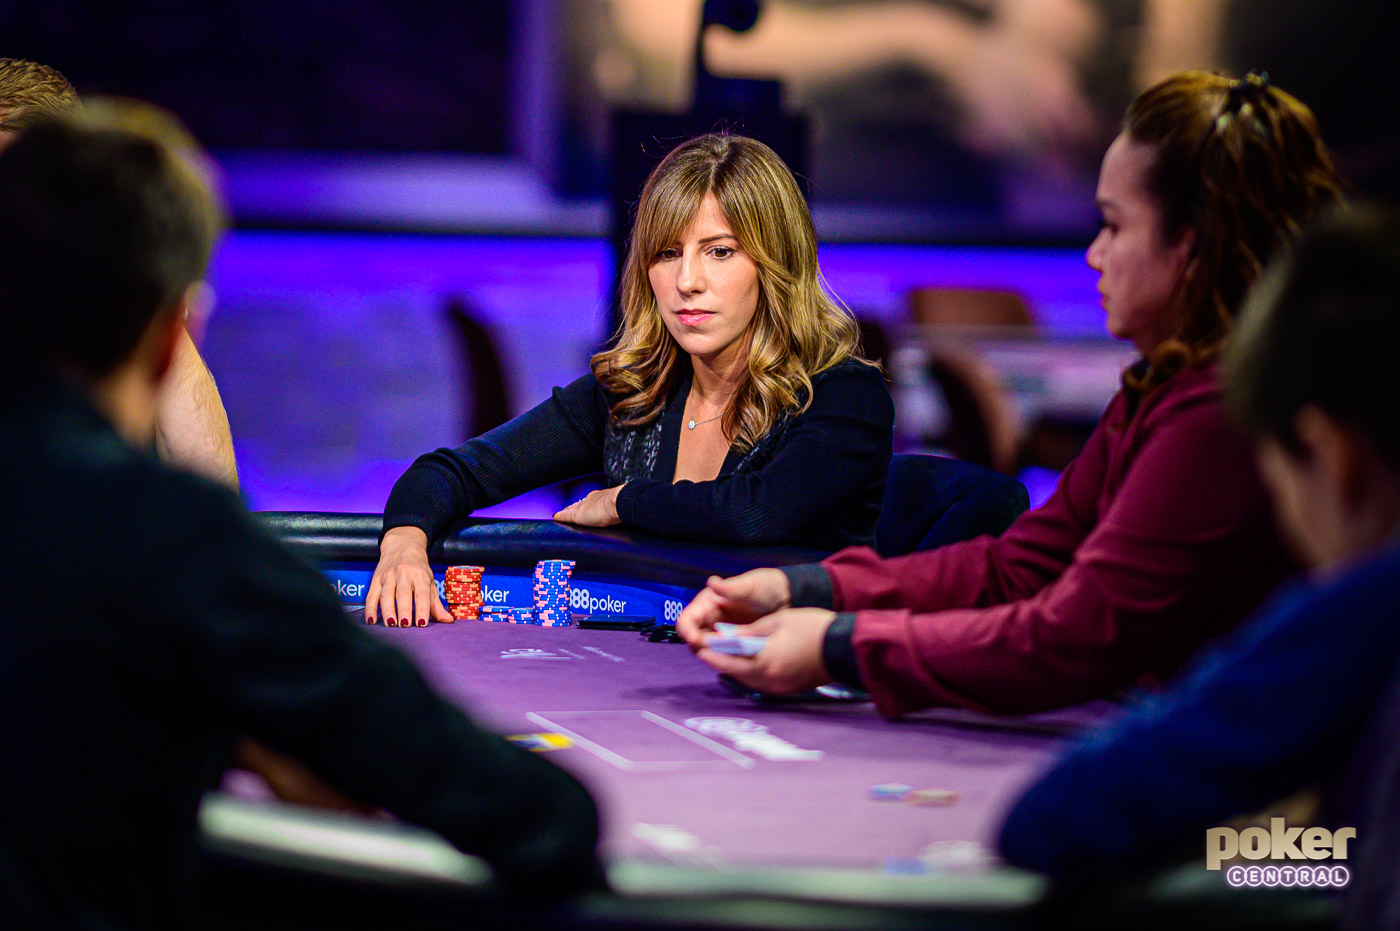 Kristen Bicknell in action during the 2019 Poker Masters.